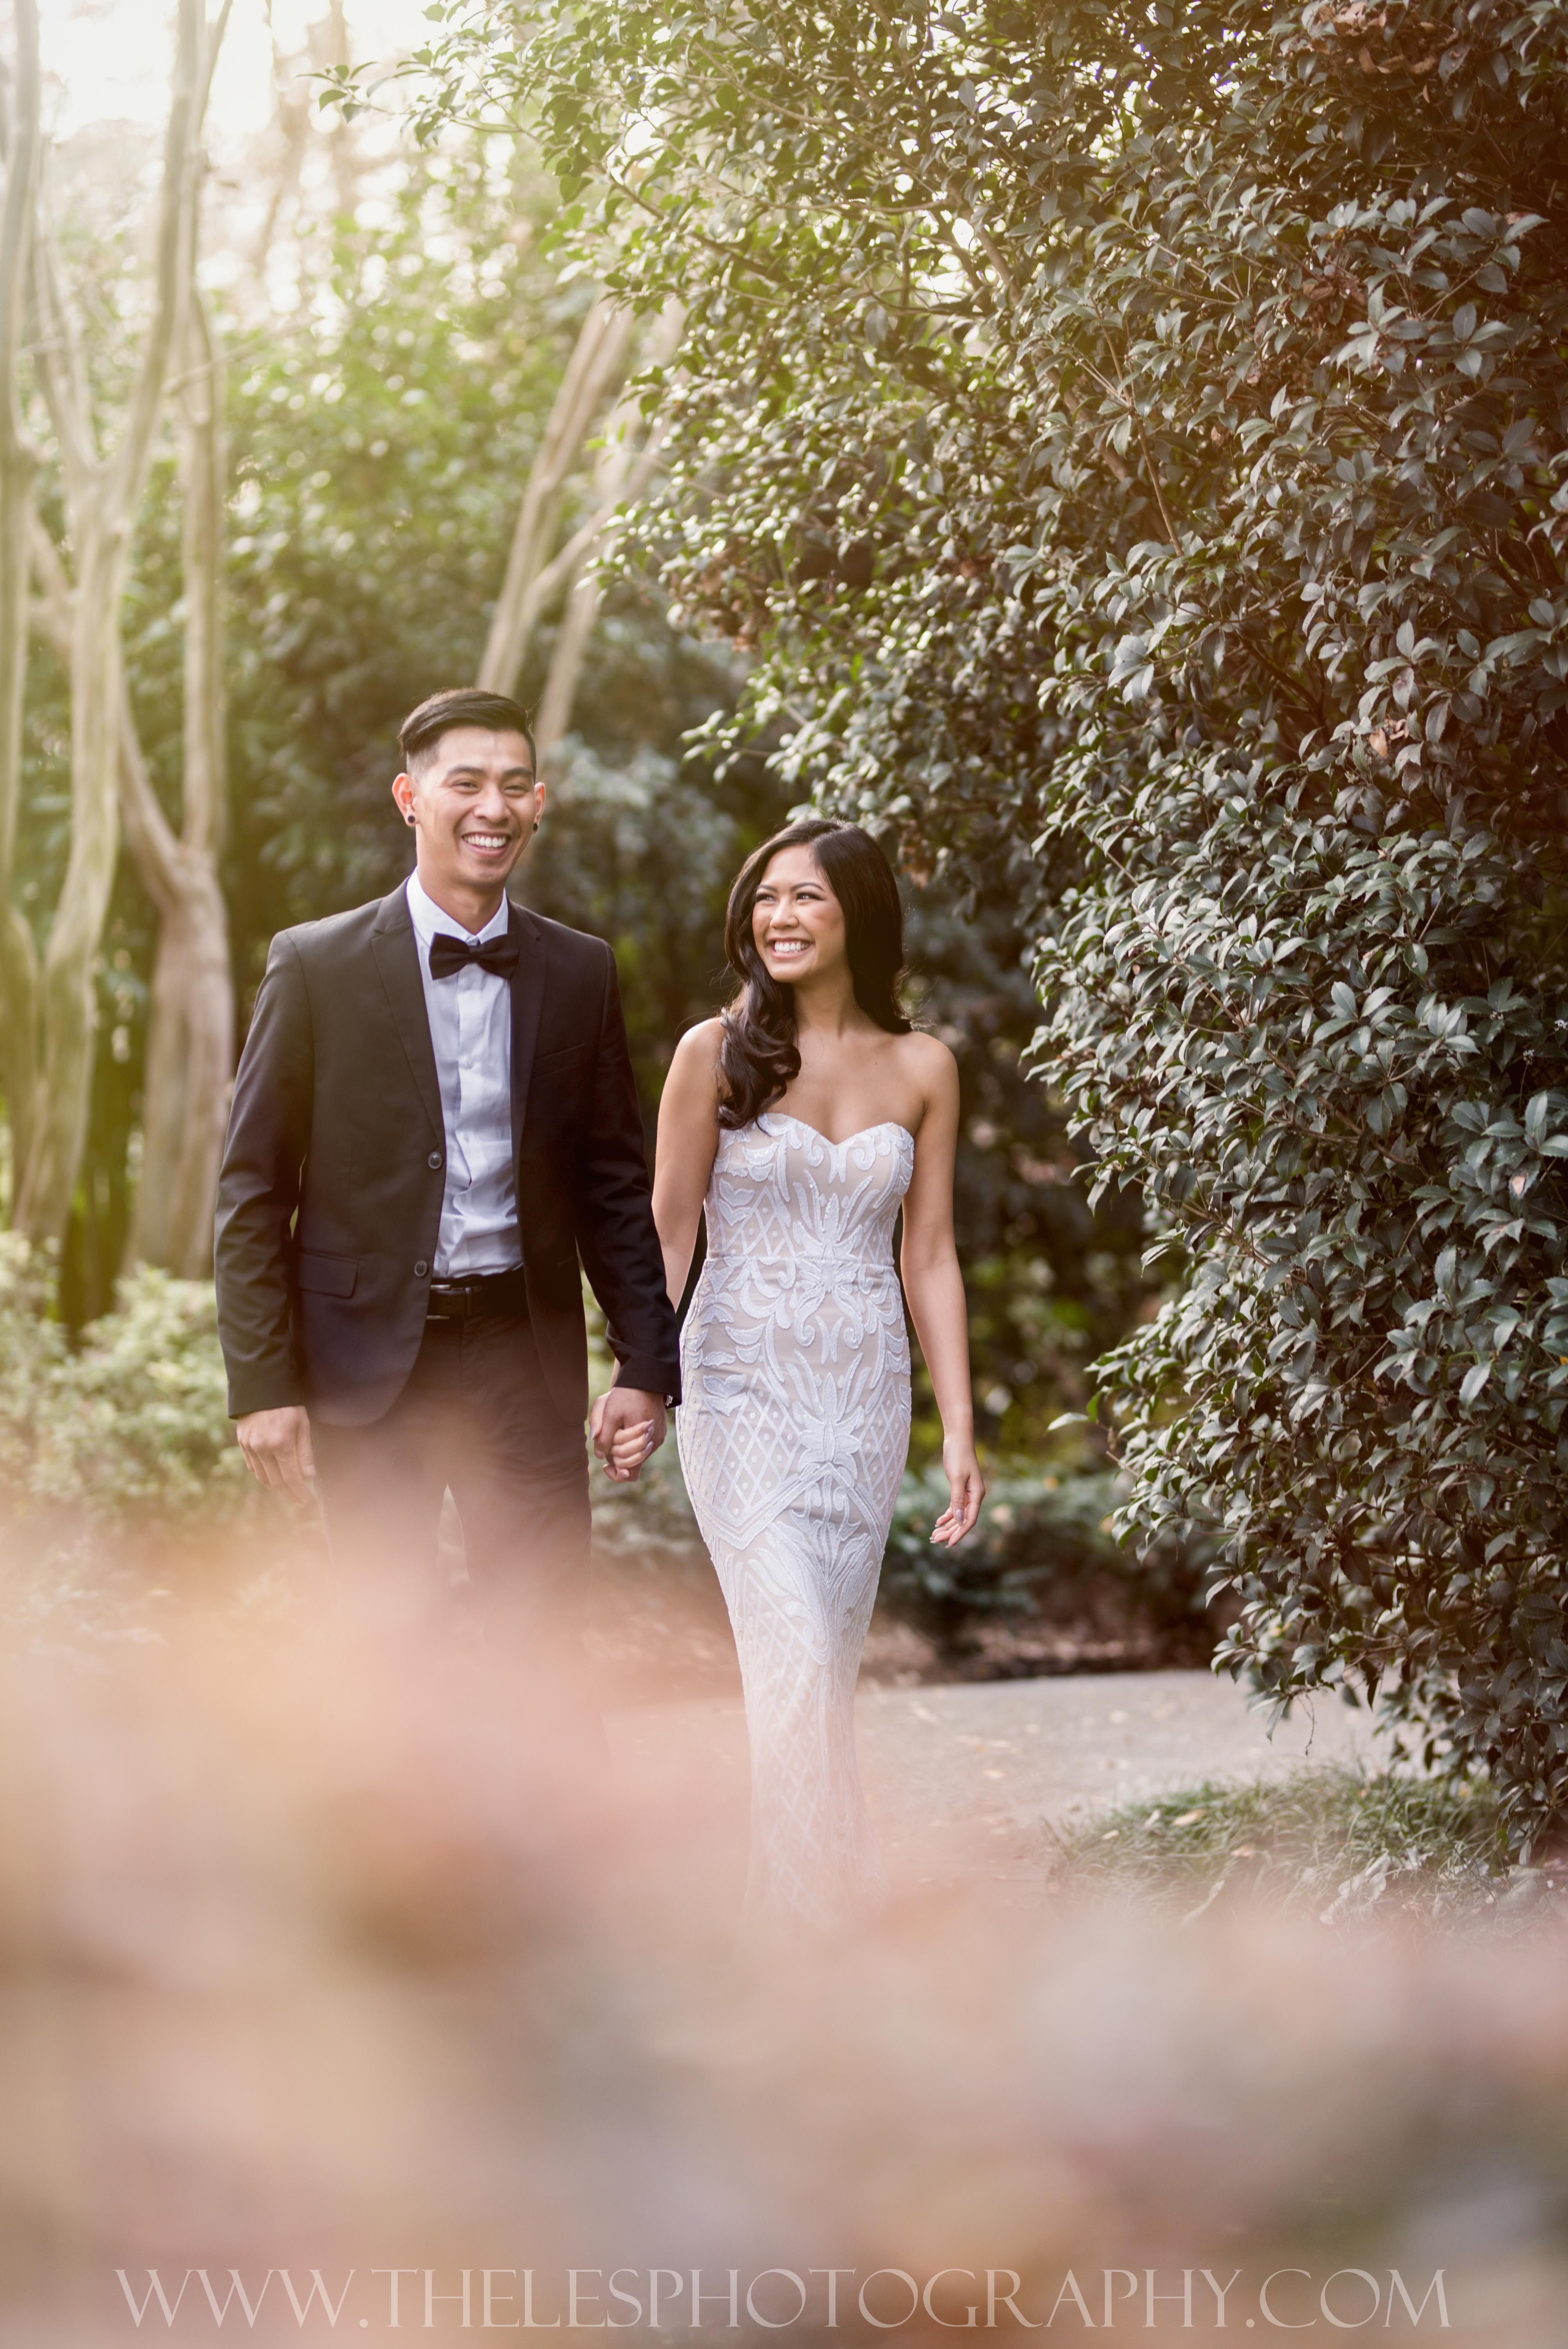 Thu and Hieu's Engagement Highlight 04